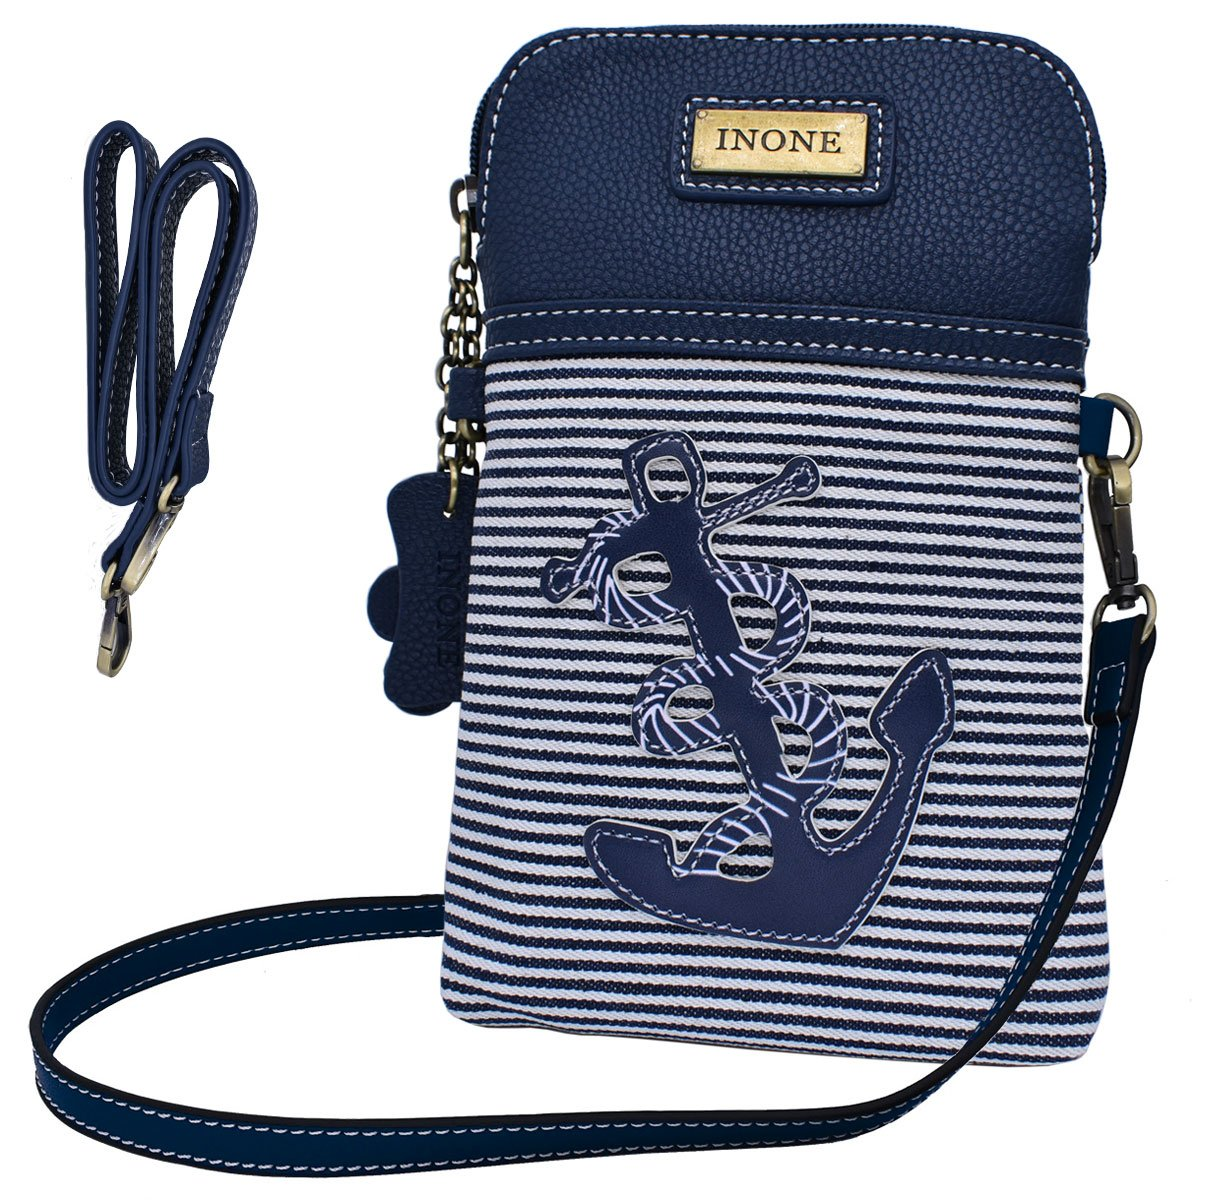 Anchor Crossbody Bag Nautical iPhone Cell Phone Purse Bag PU Leather Canvas Handbag for Smartphone Credit Card Passport Keys by inOne (Image #4)